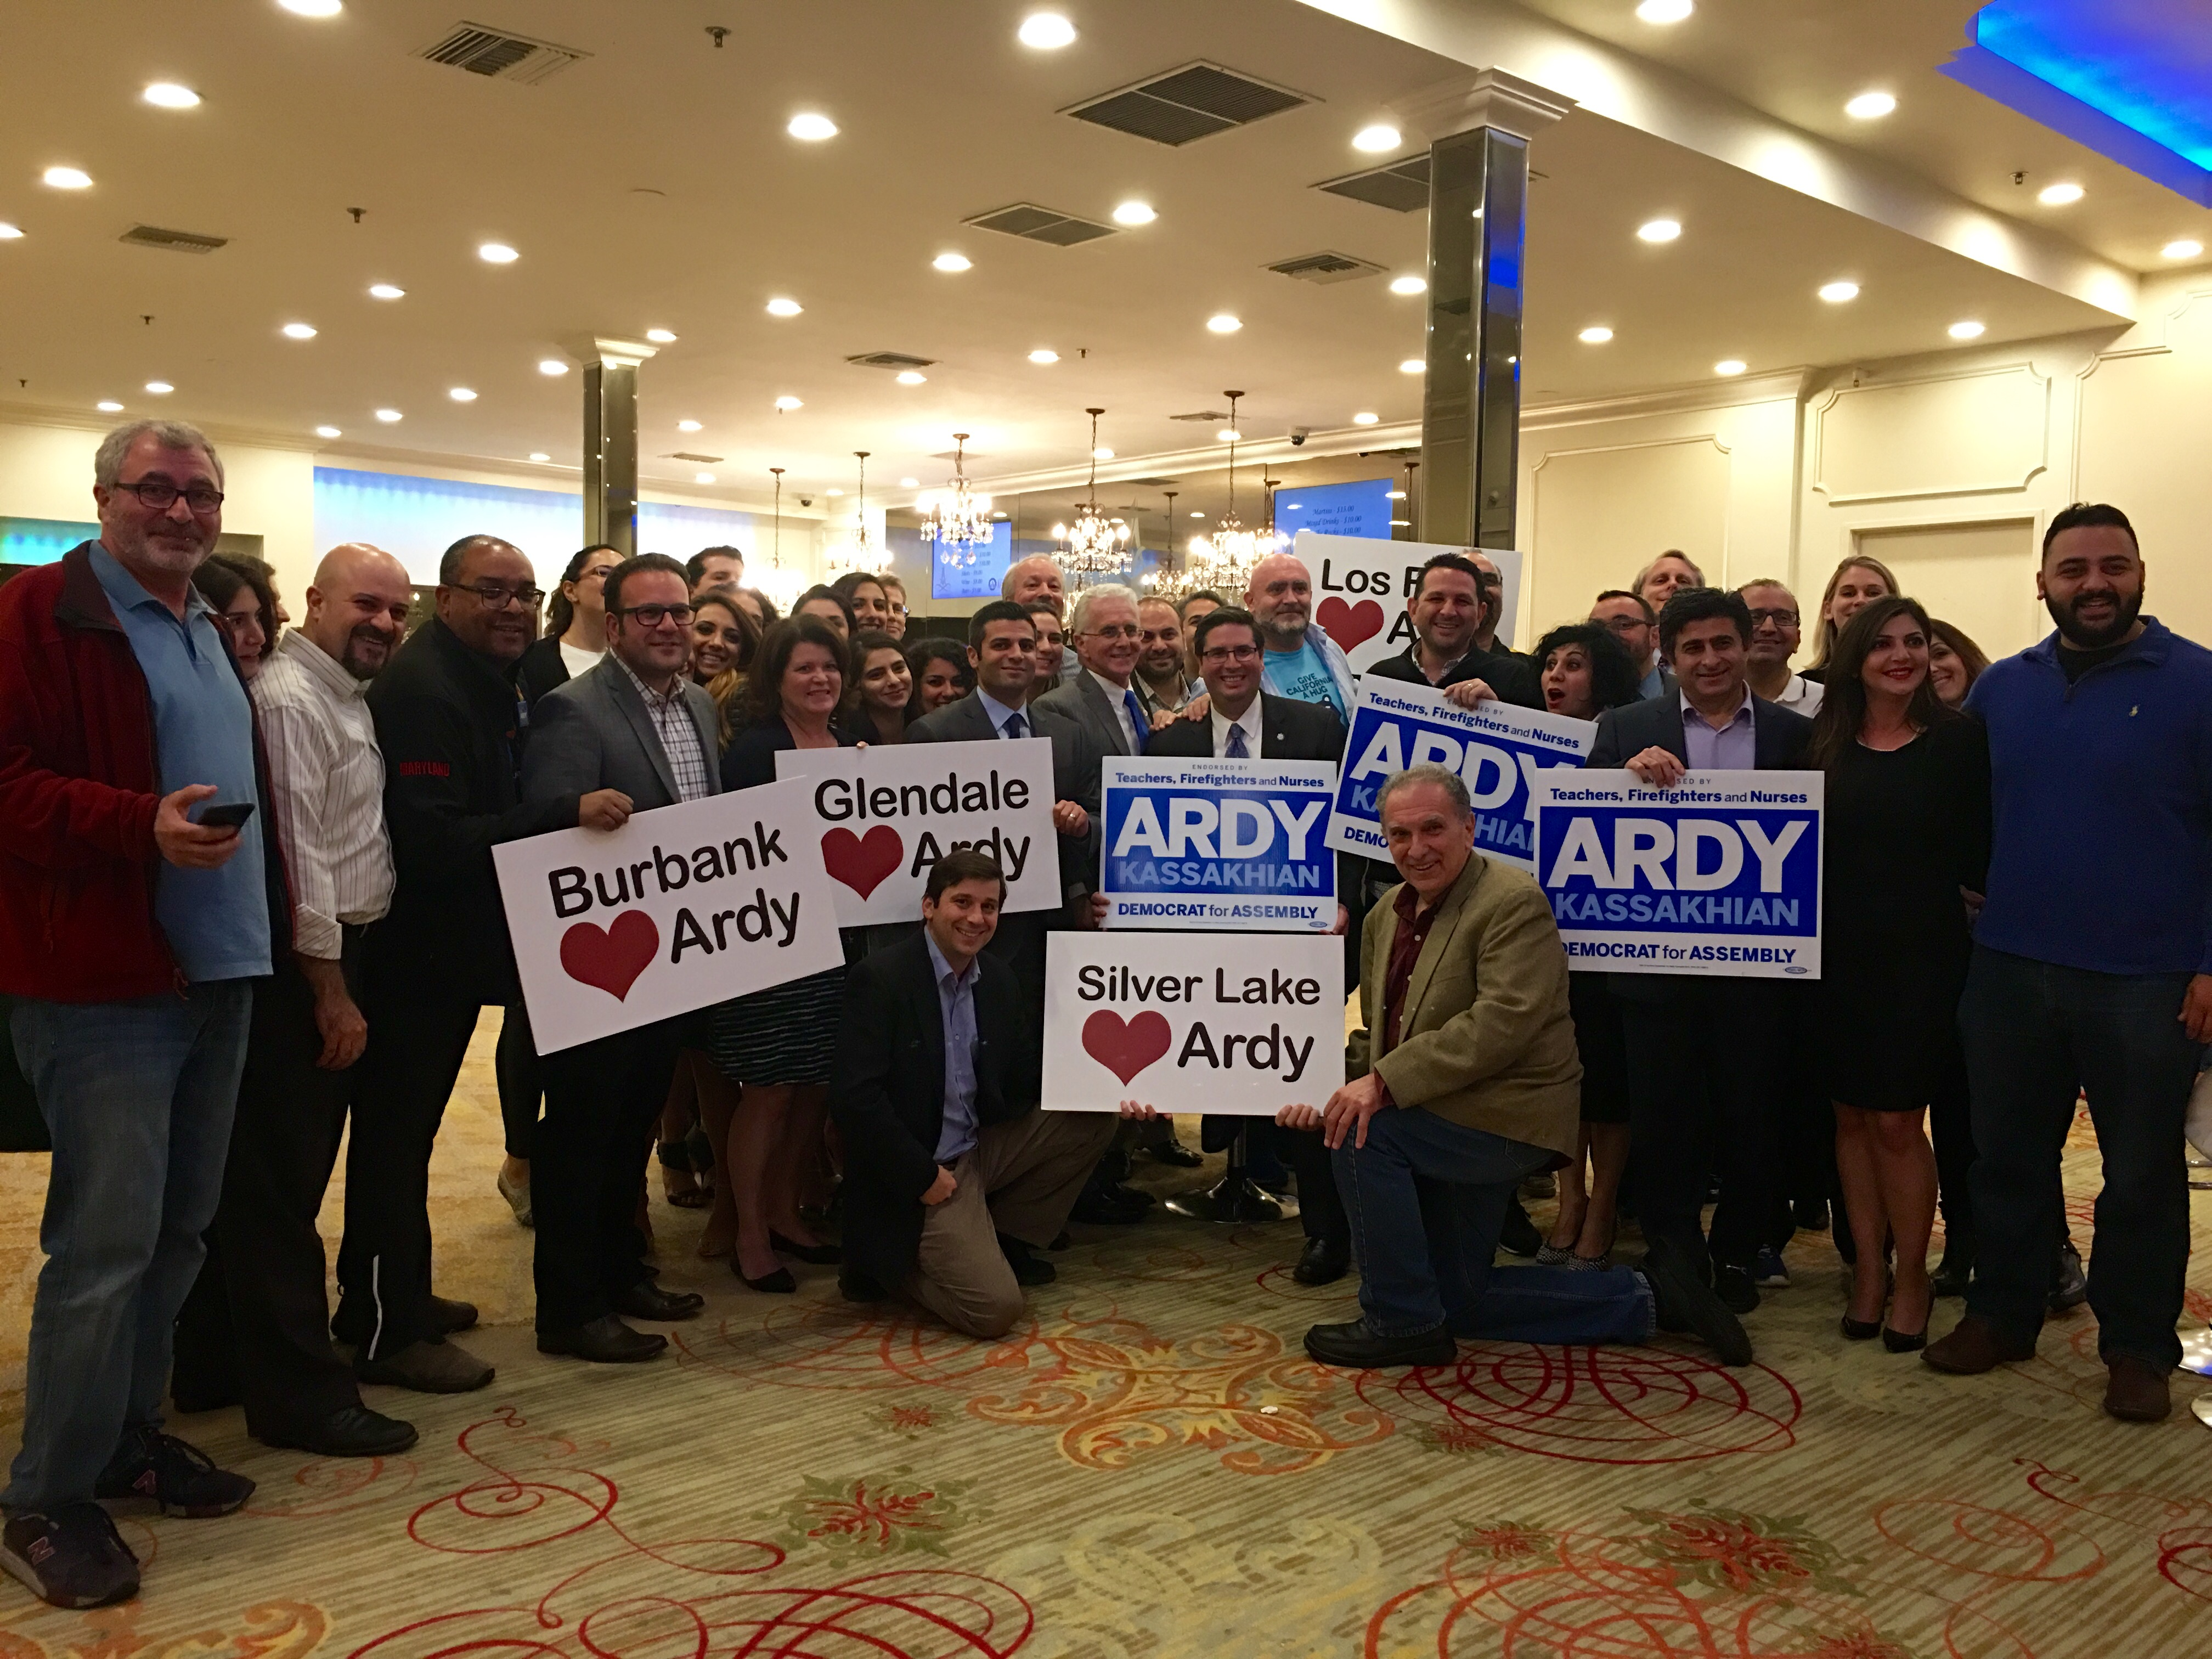 Ardy-for-Assembly-June-7-Primary-Election.jpg